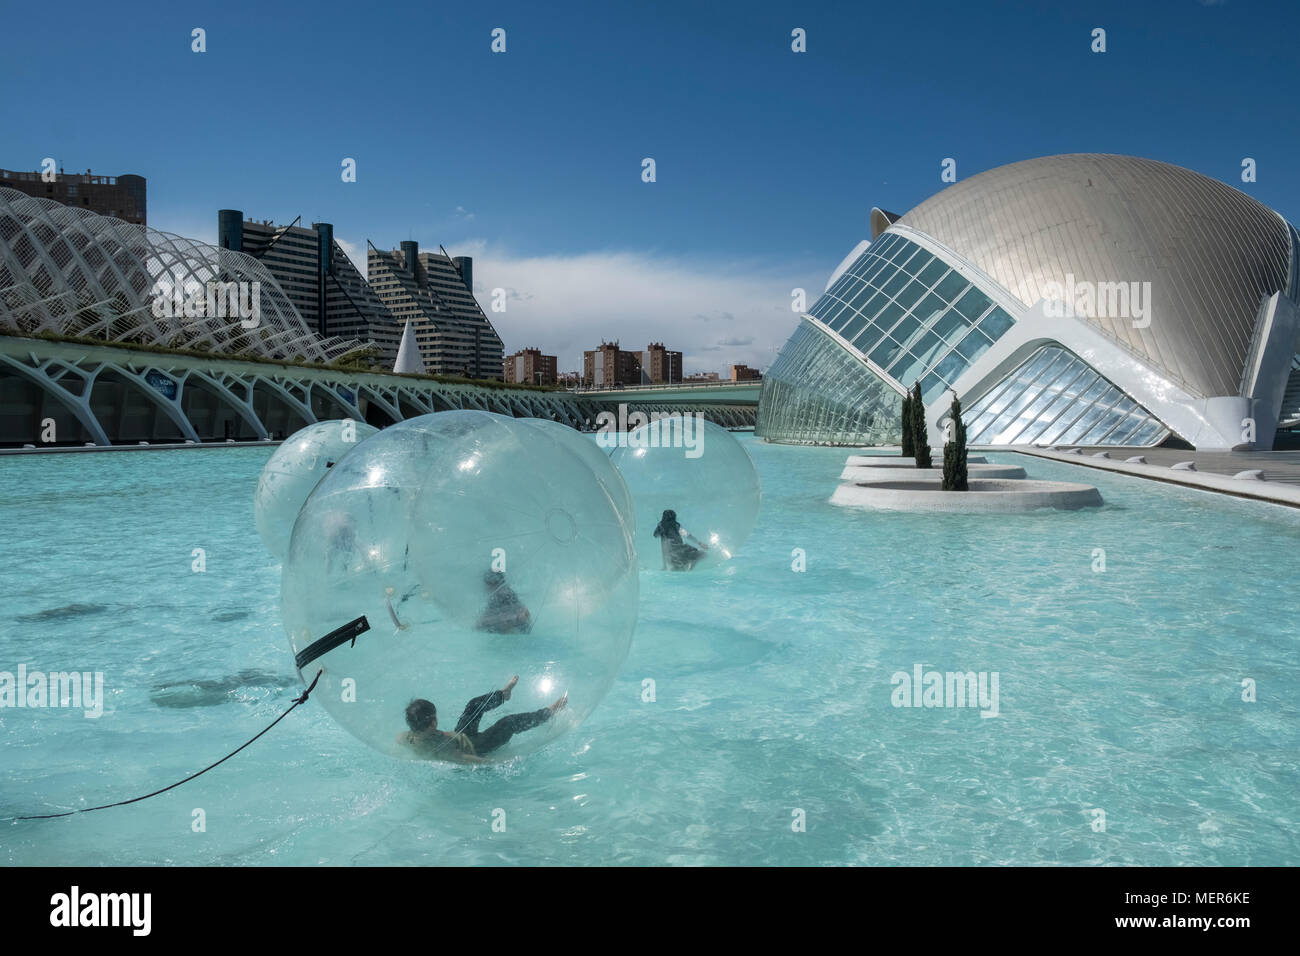 Young children having fun inside a water walking ball in L'Hemisferic building pool area, City of Arts and Sciences, Valencia, Spain. - Stock Image